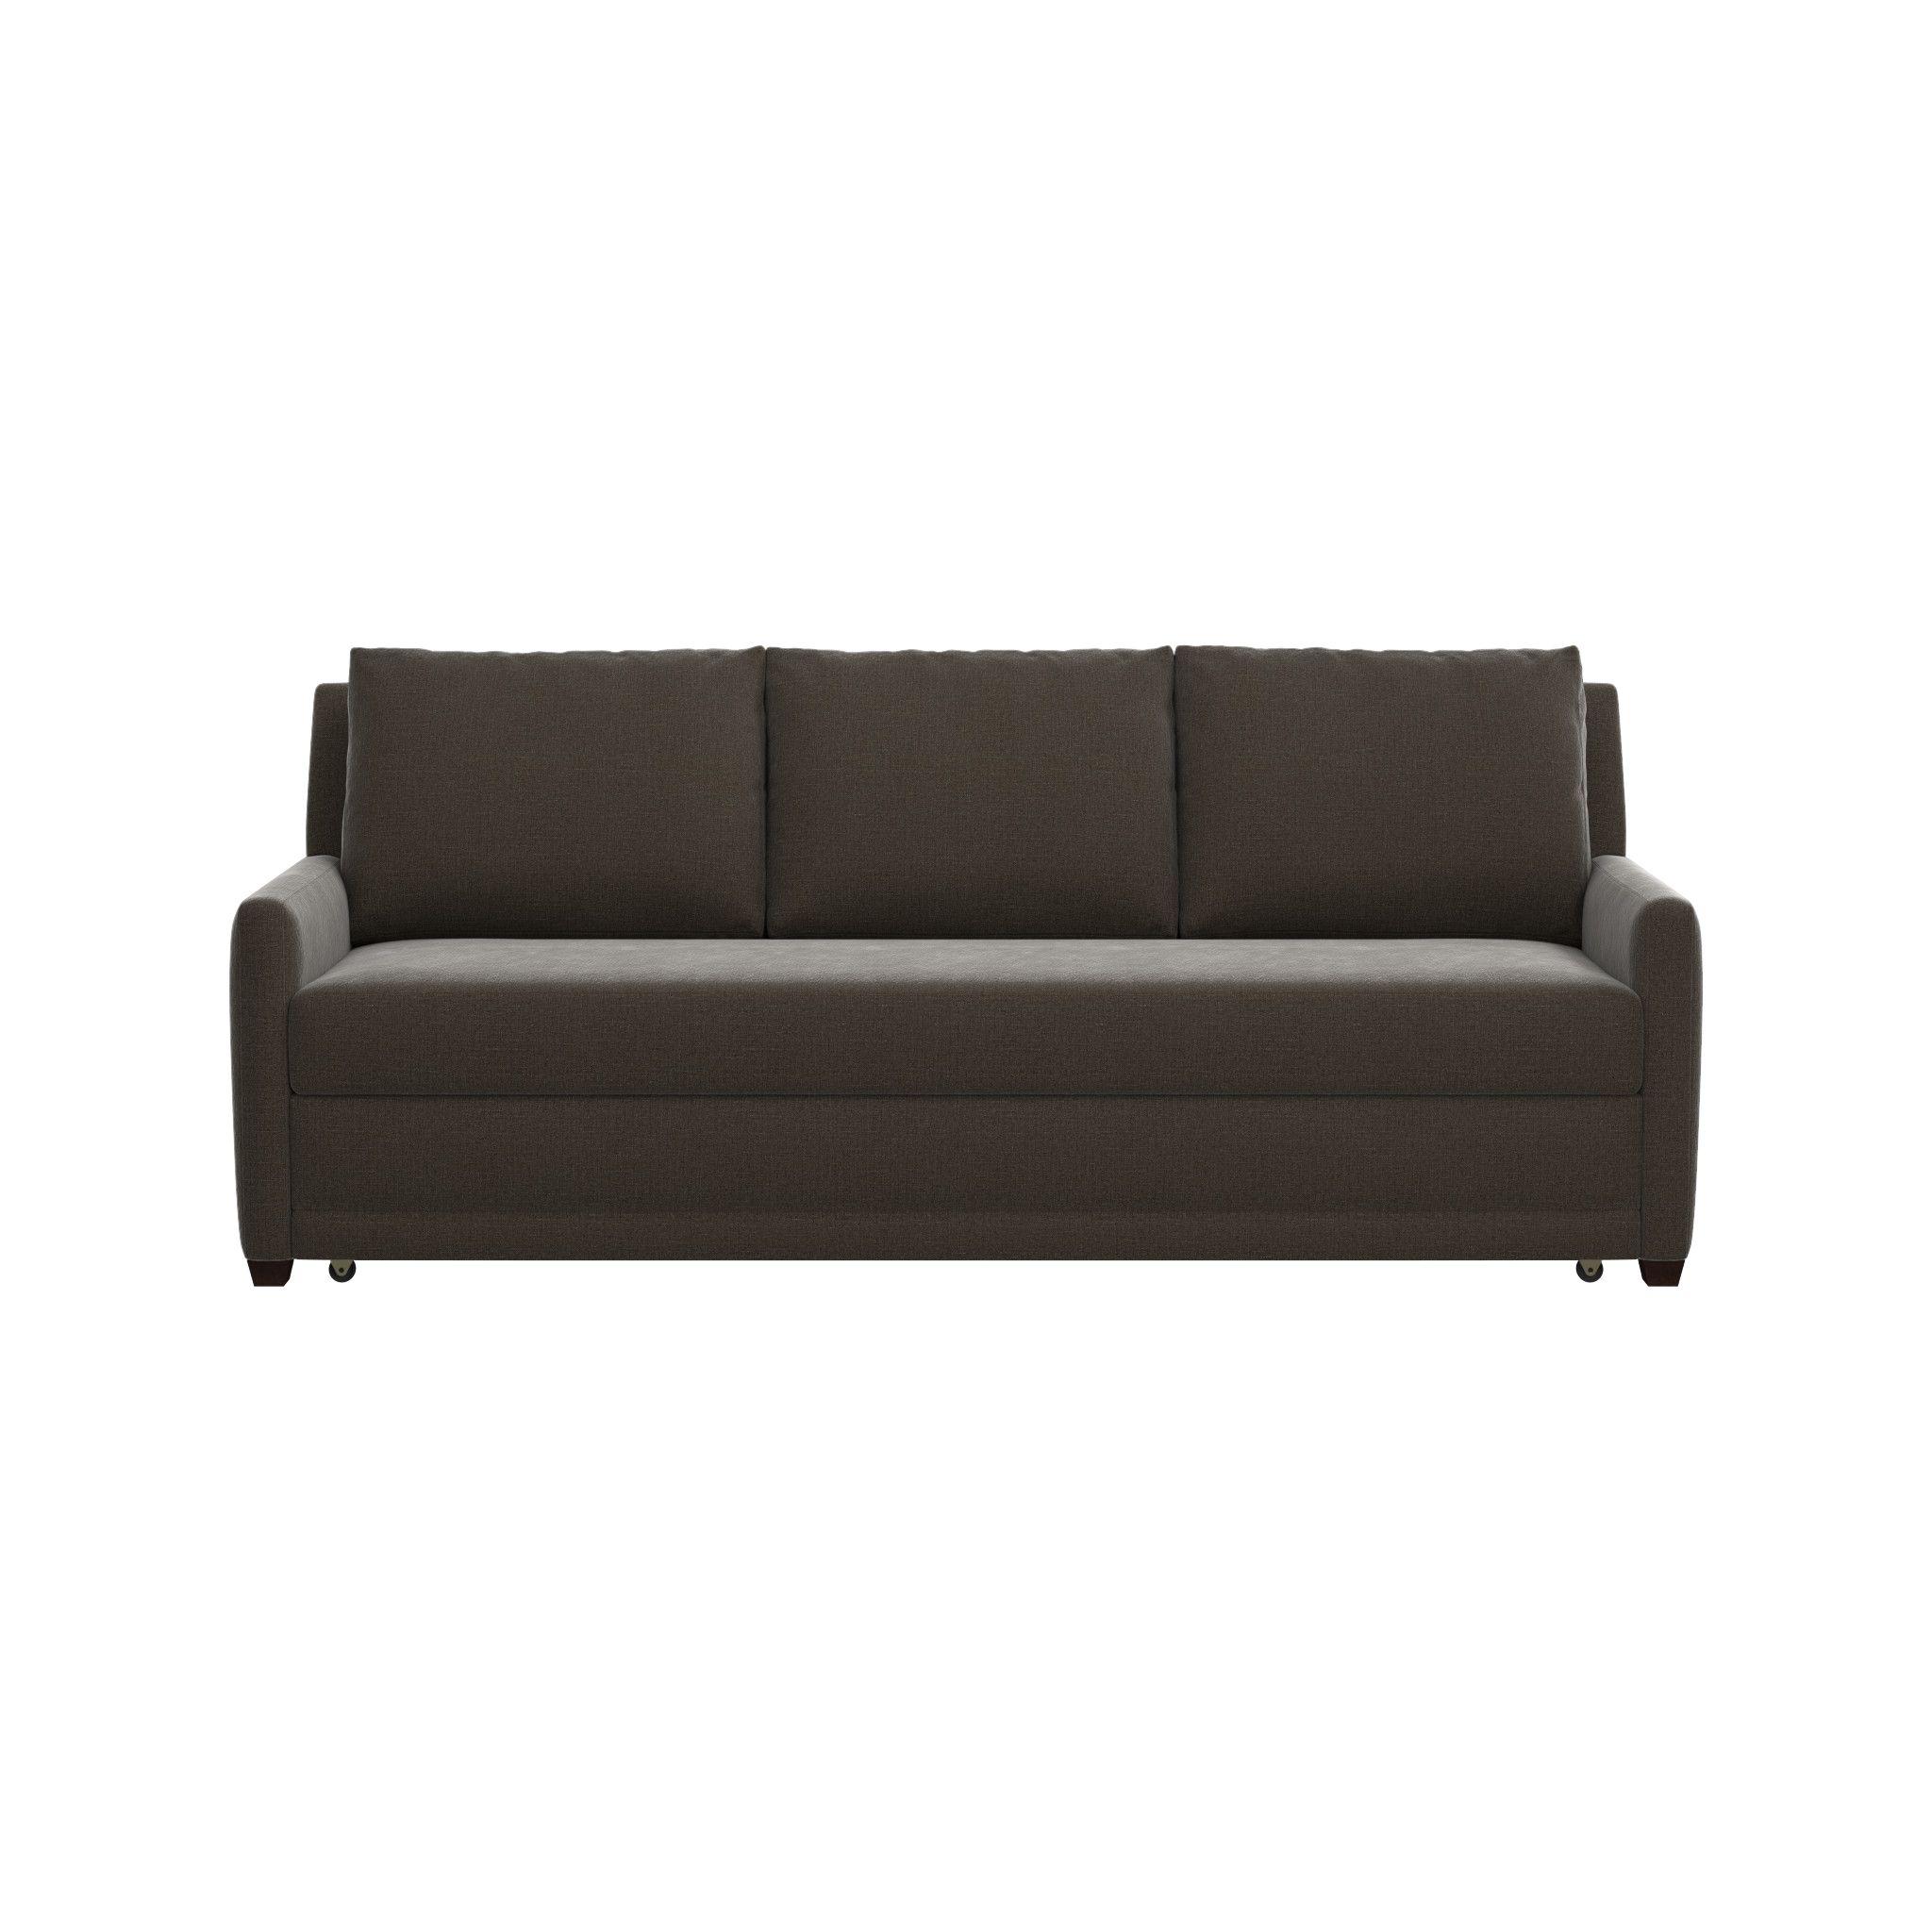 Reston Queen Sleeper Sofa | Crate And Barrel for Crate And Barrel Sleeper Sofas (Image 11 of 15)